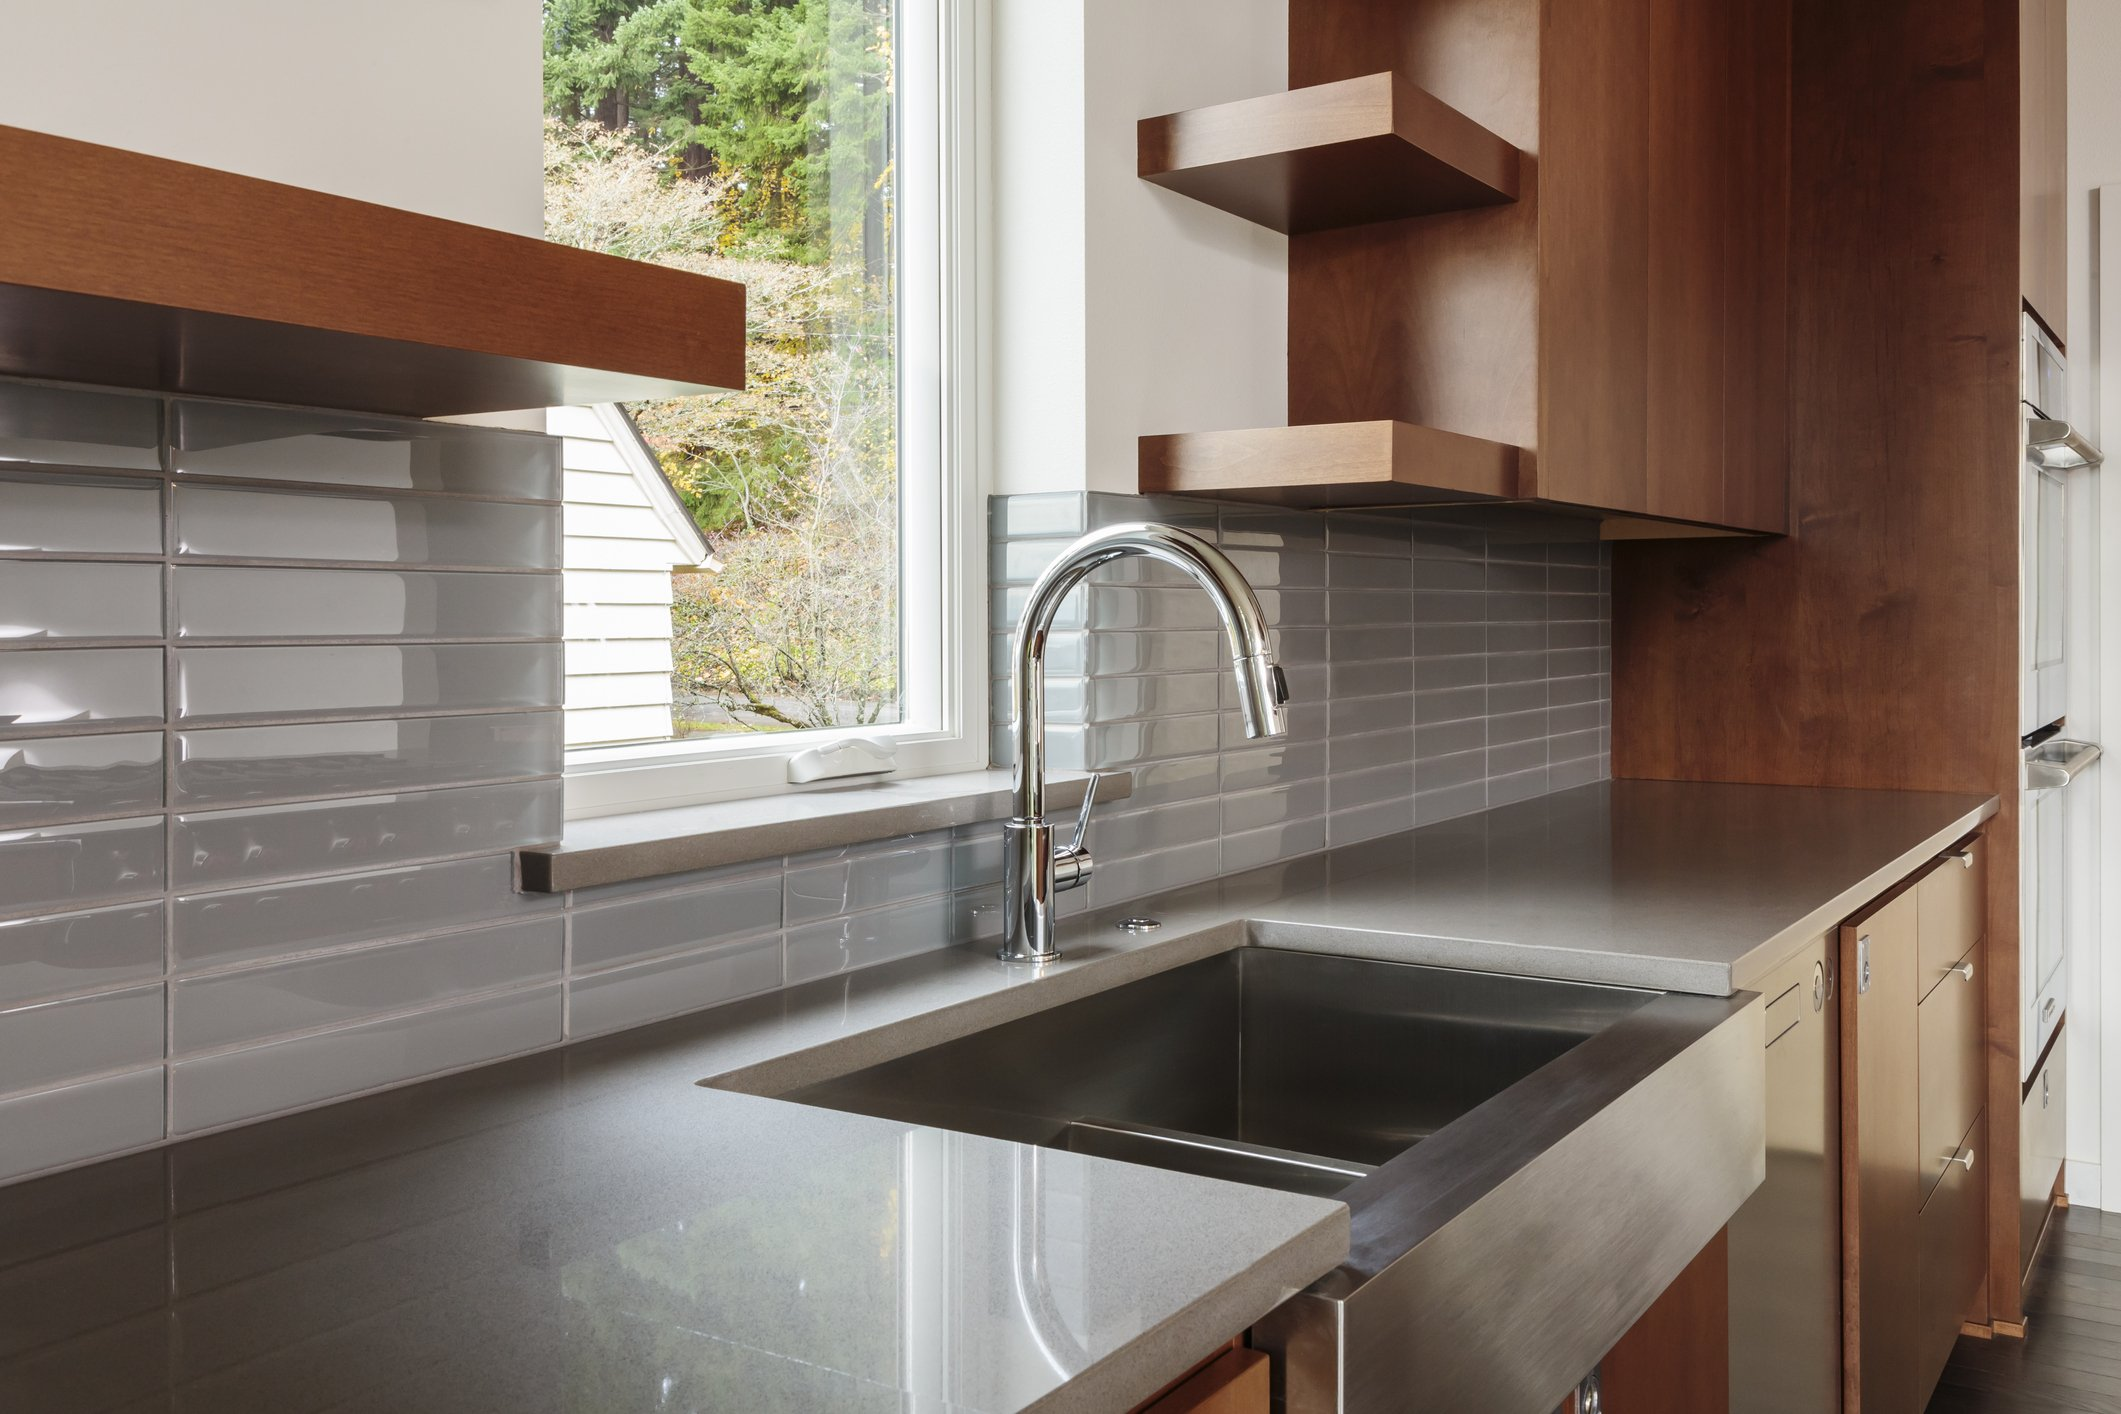 The Best Kitchen Countertop Trends to Try If You Hate Granite